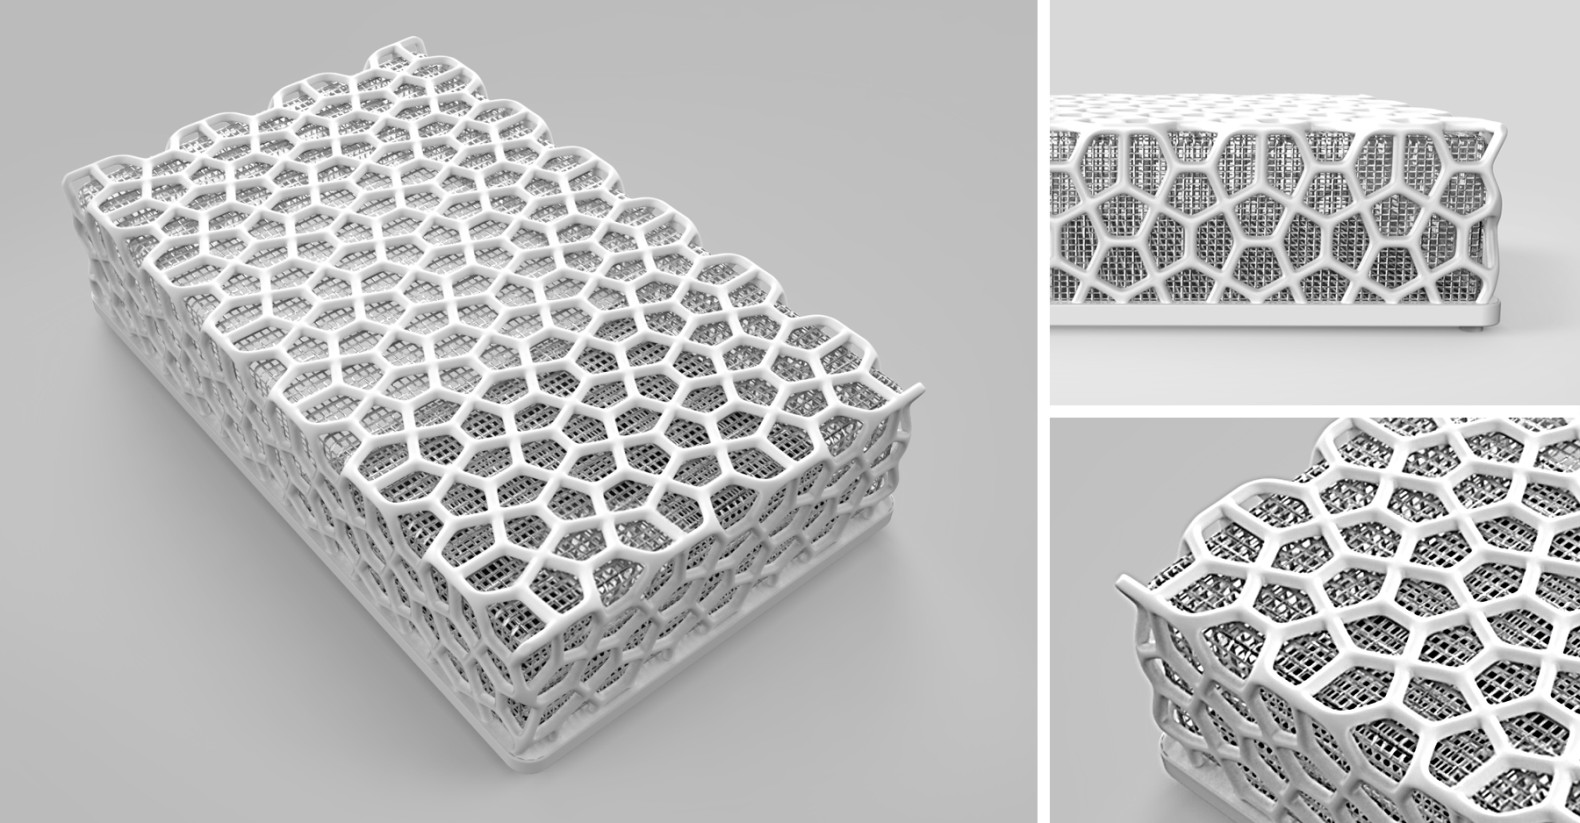 Ashcroft Design Proposes A Hard Drive Cooling Cover Made From Recycled Tires